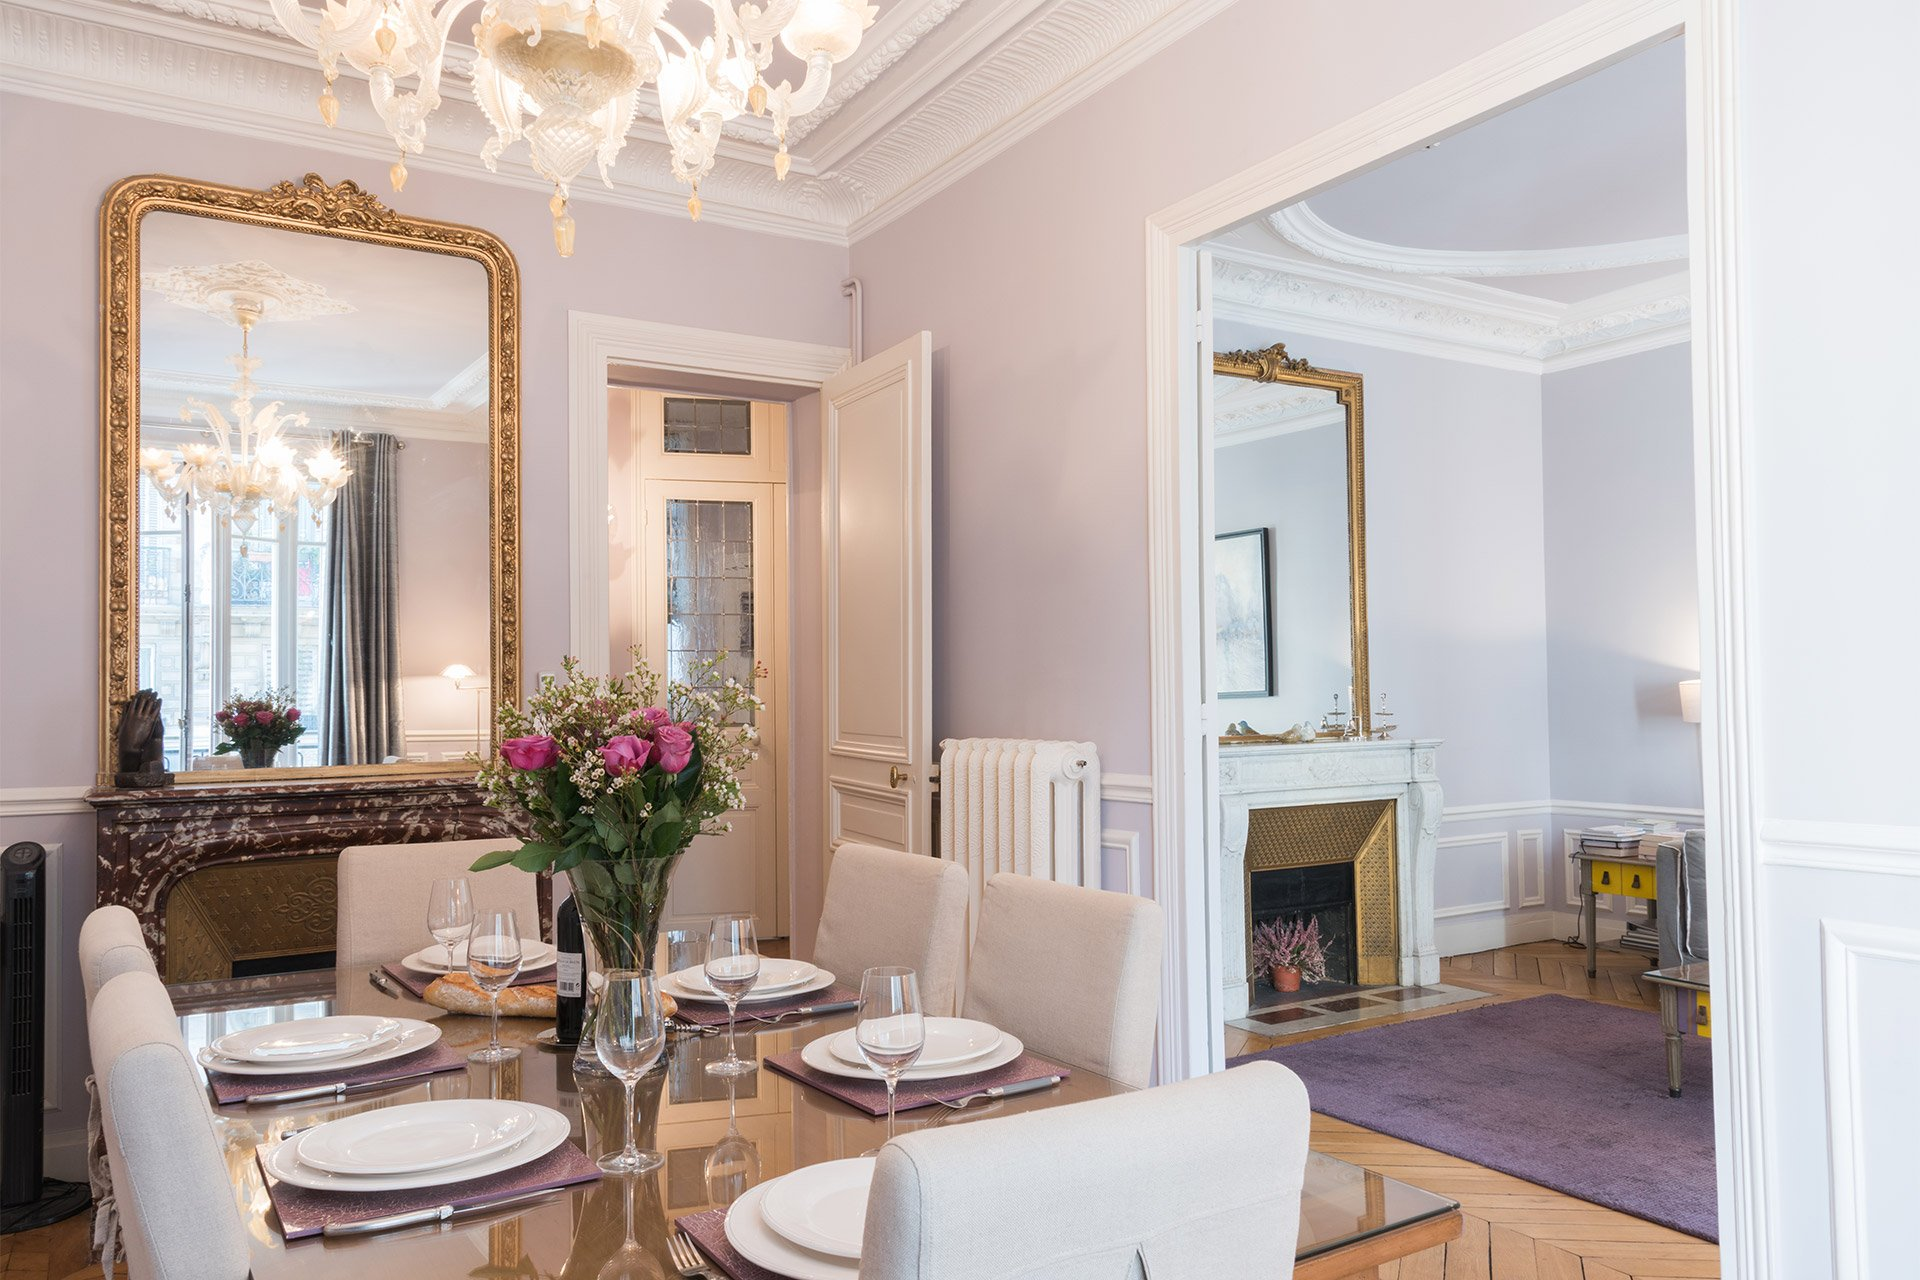 Dining table in the Maubert vacation rental offered by Paris Perfect